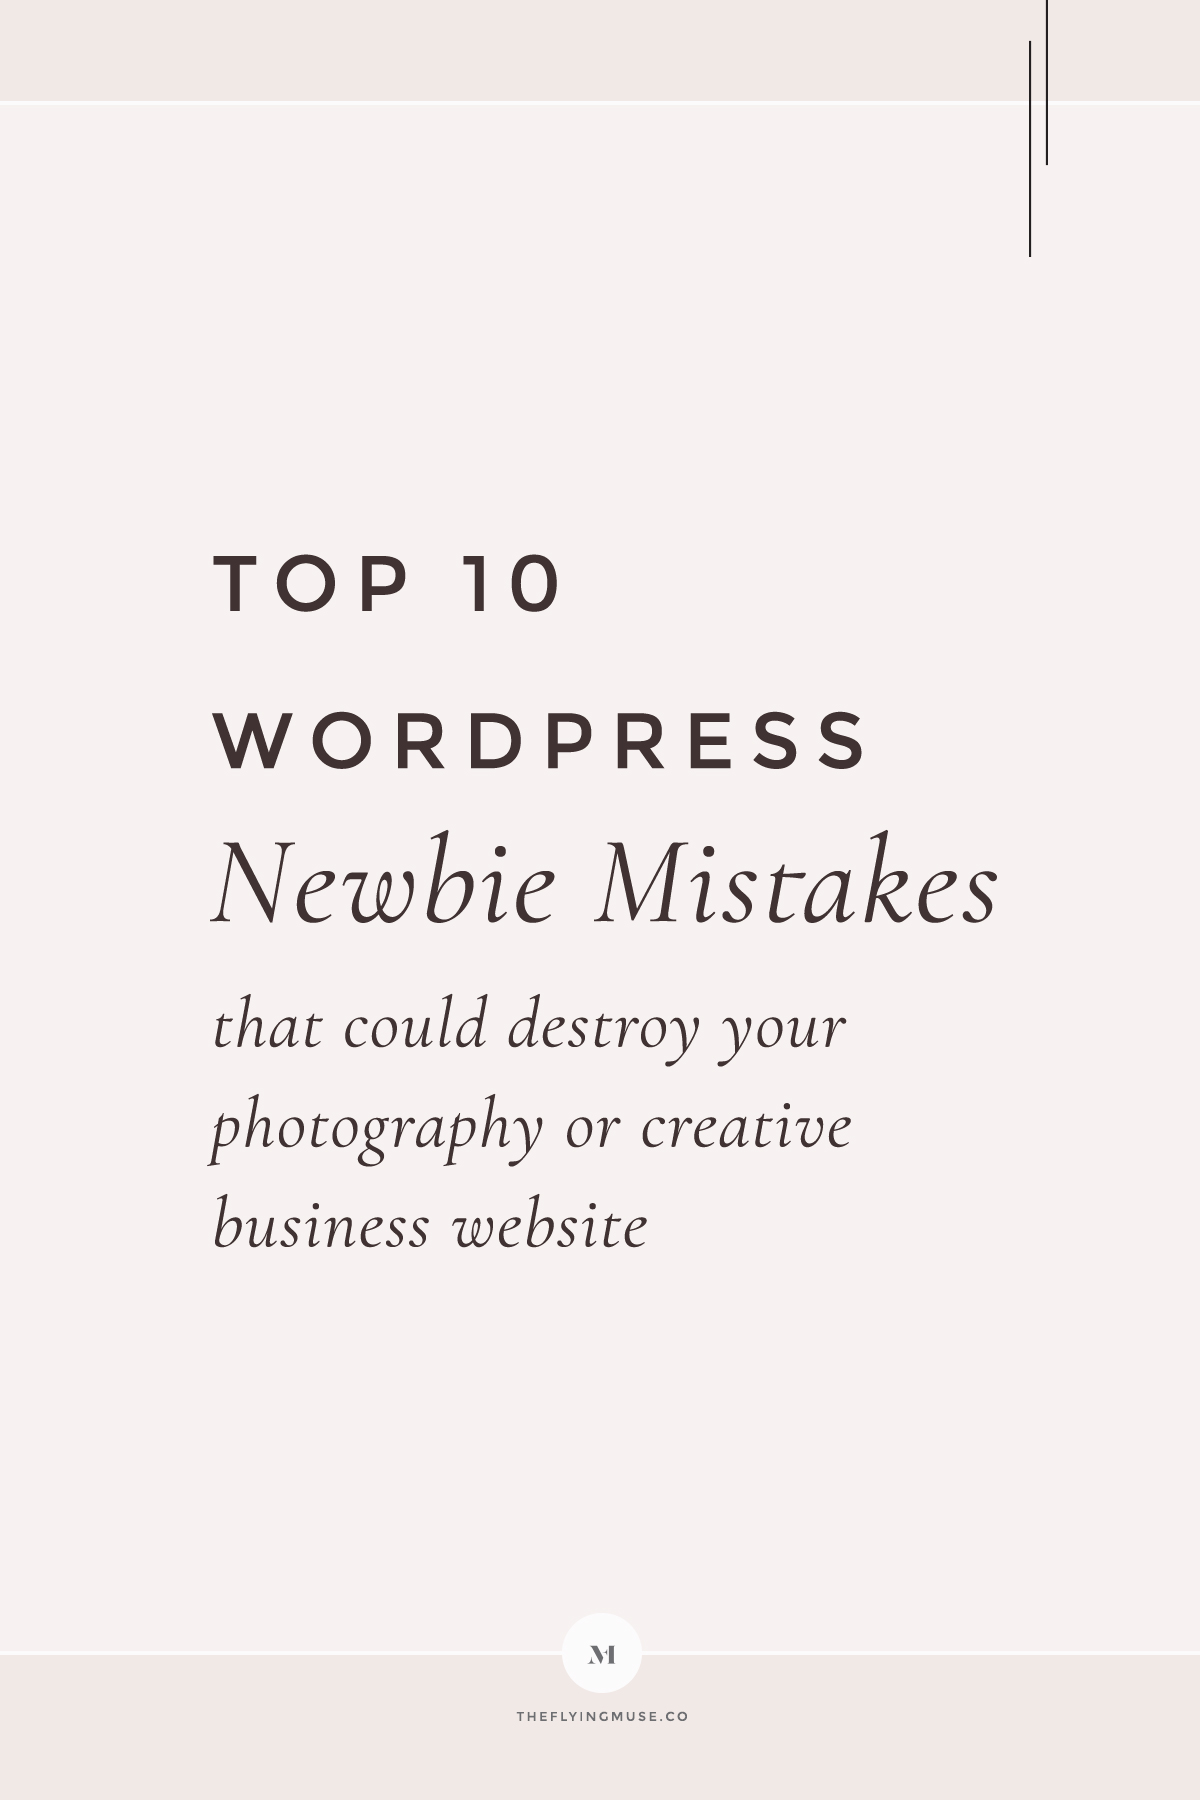 Top WordPress Newbie Mistakes could destroy your photography or creative business website